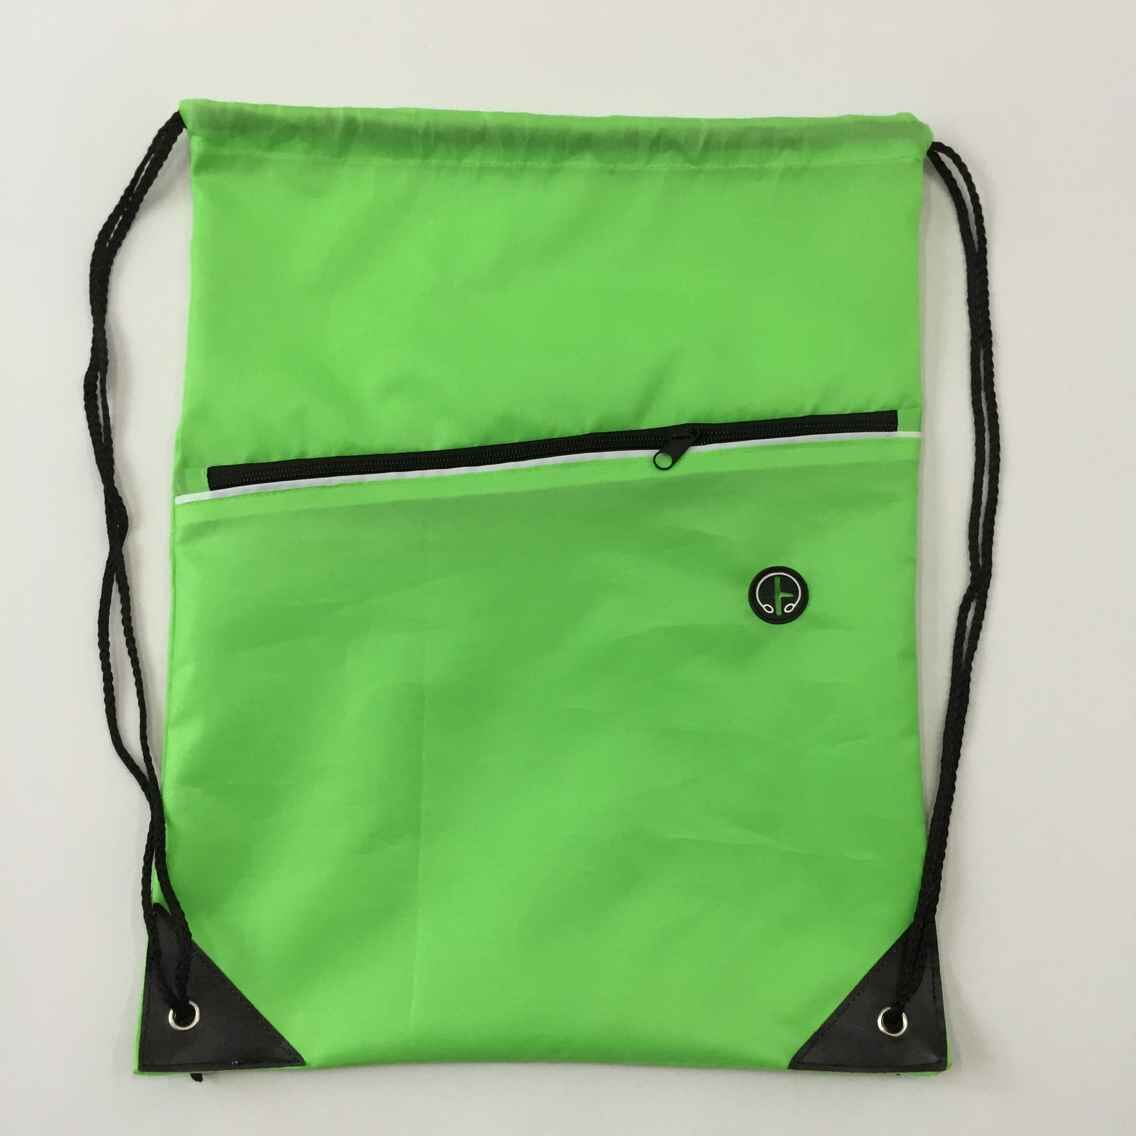 210d polyester drawstring bag with front zipper pocket with headphone jack